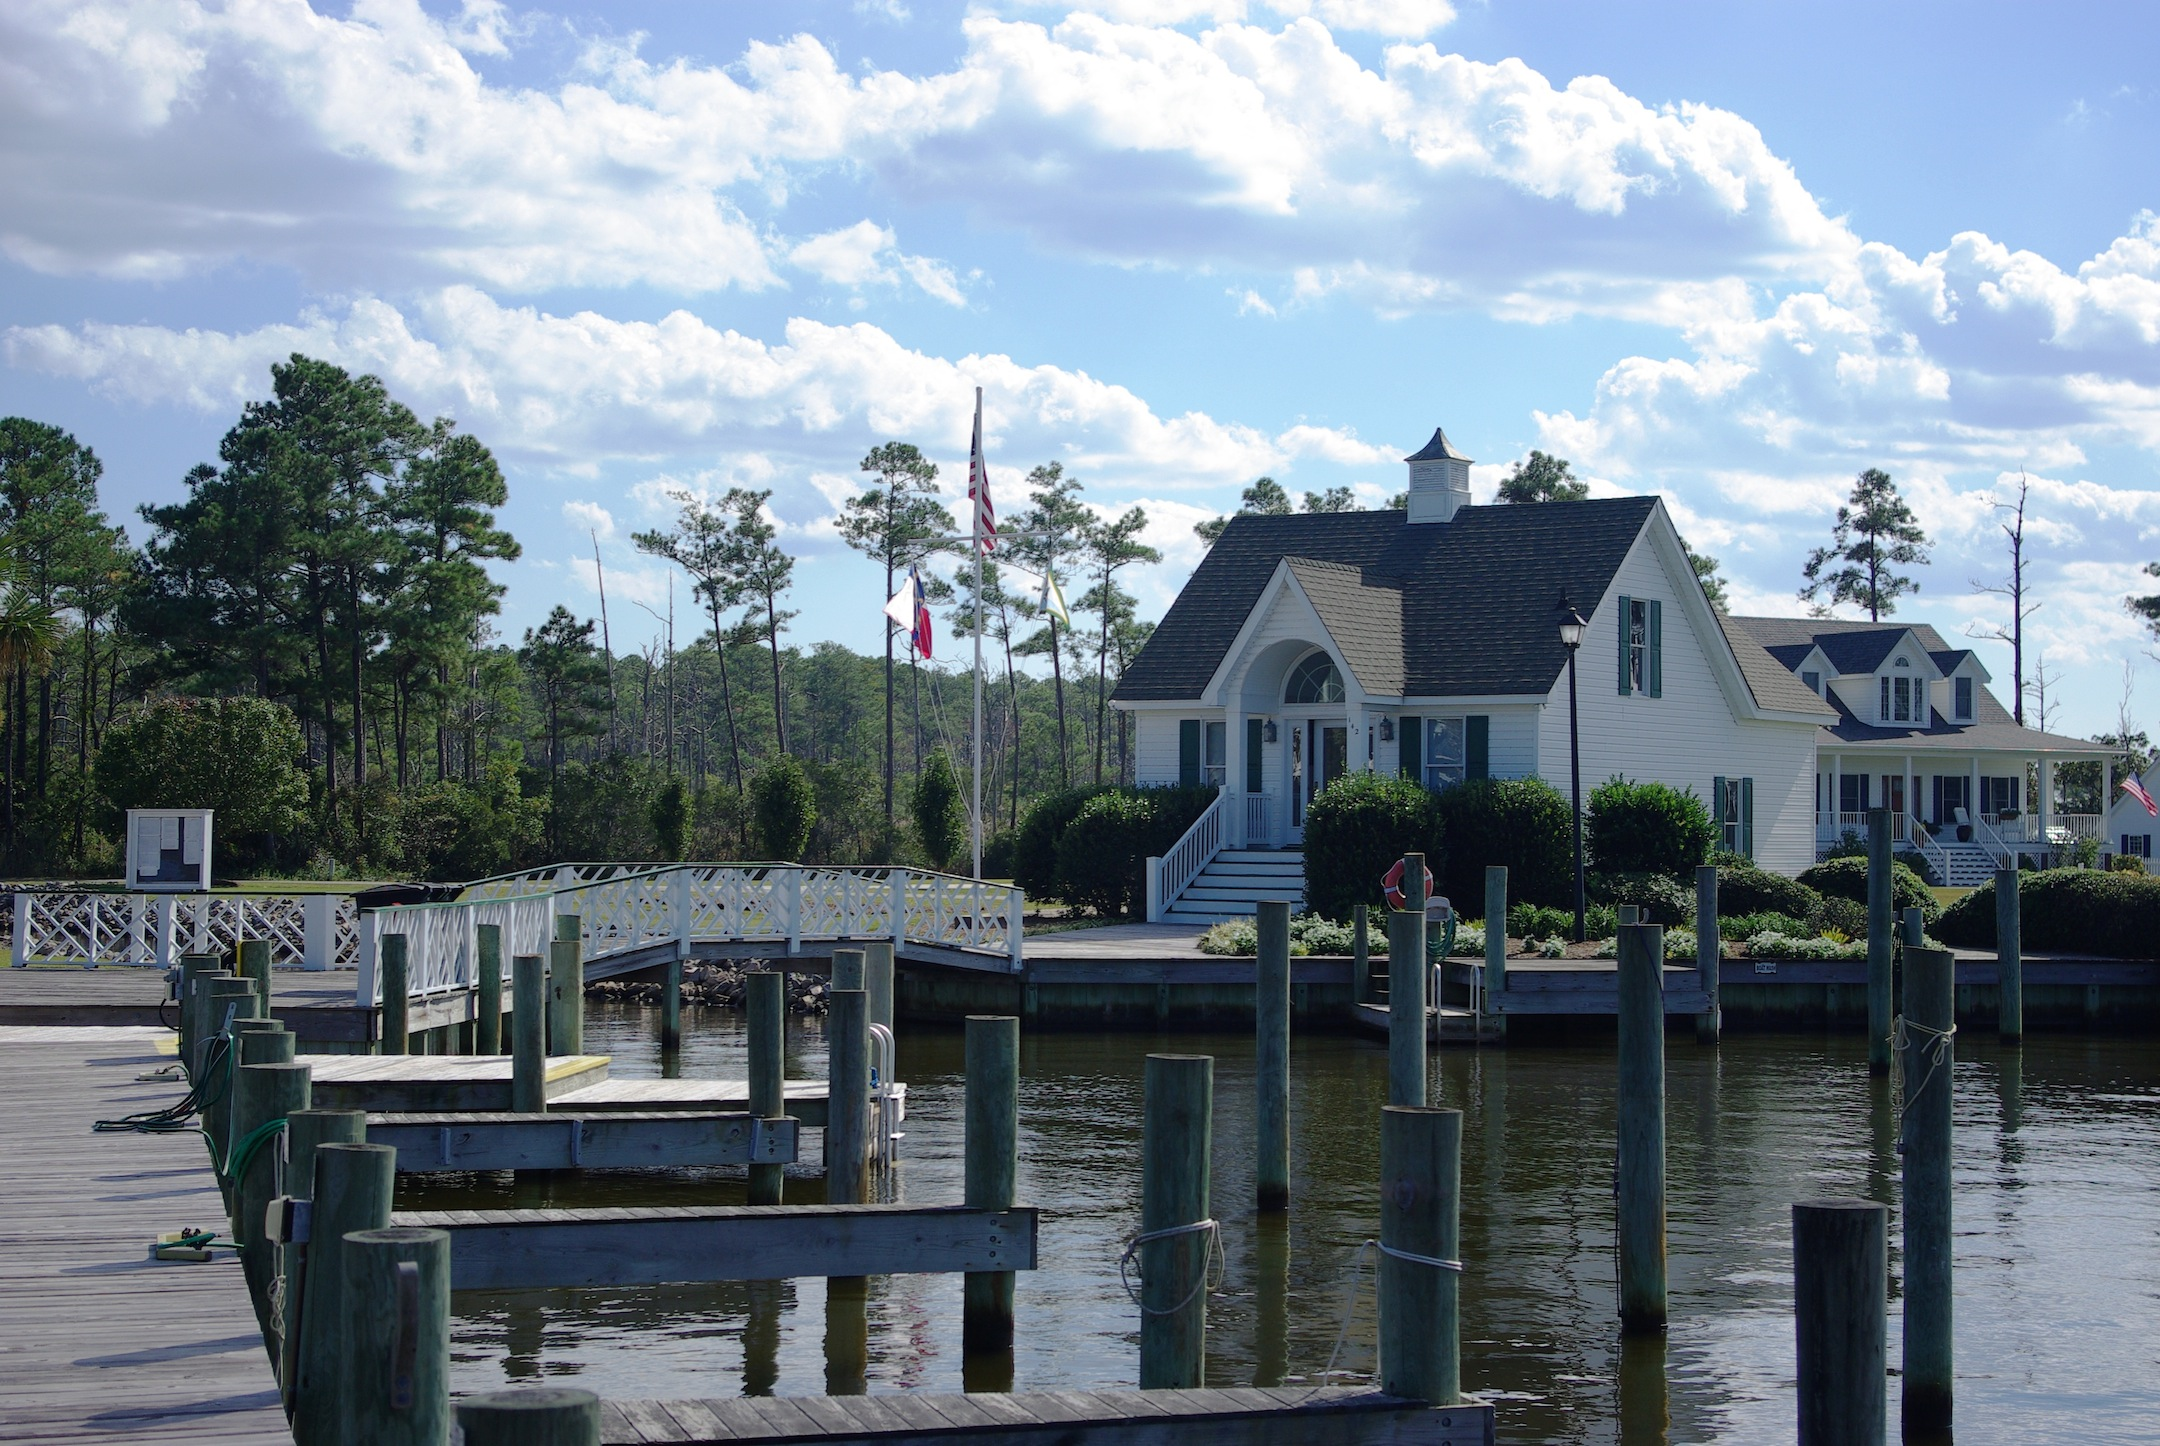 Heritage Point clubhouse, Manteo NC